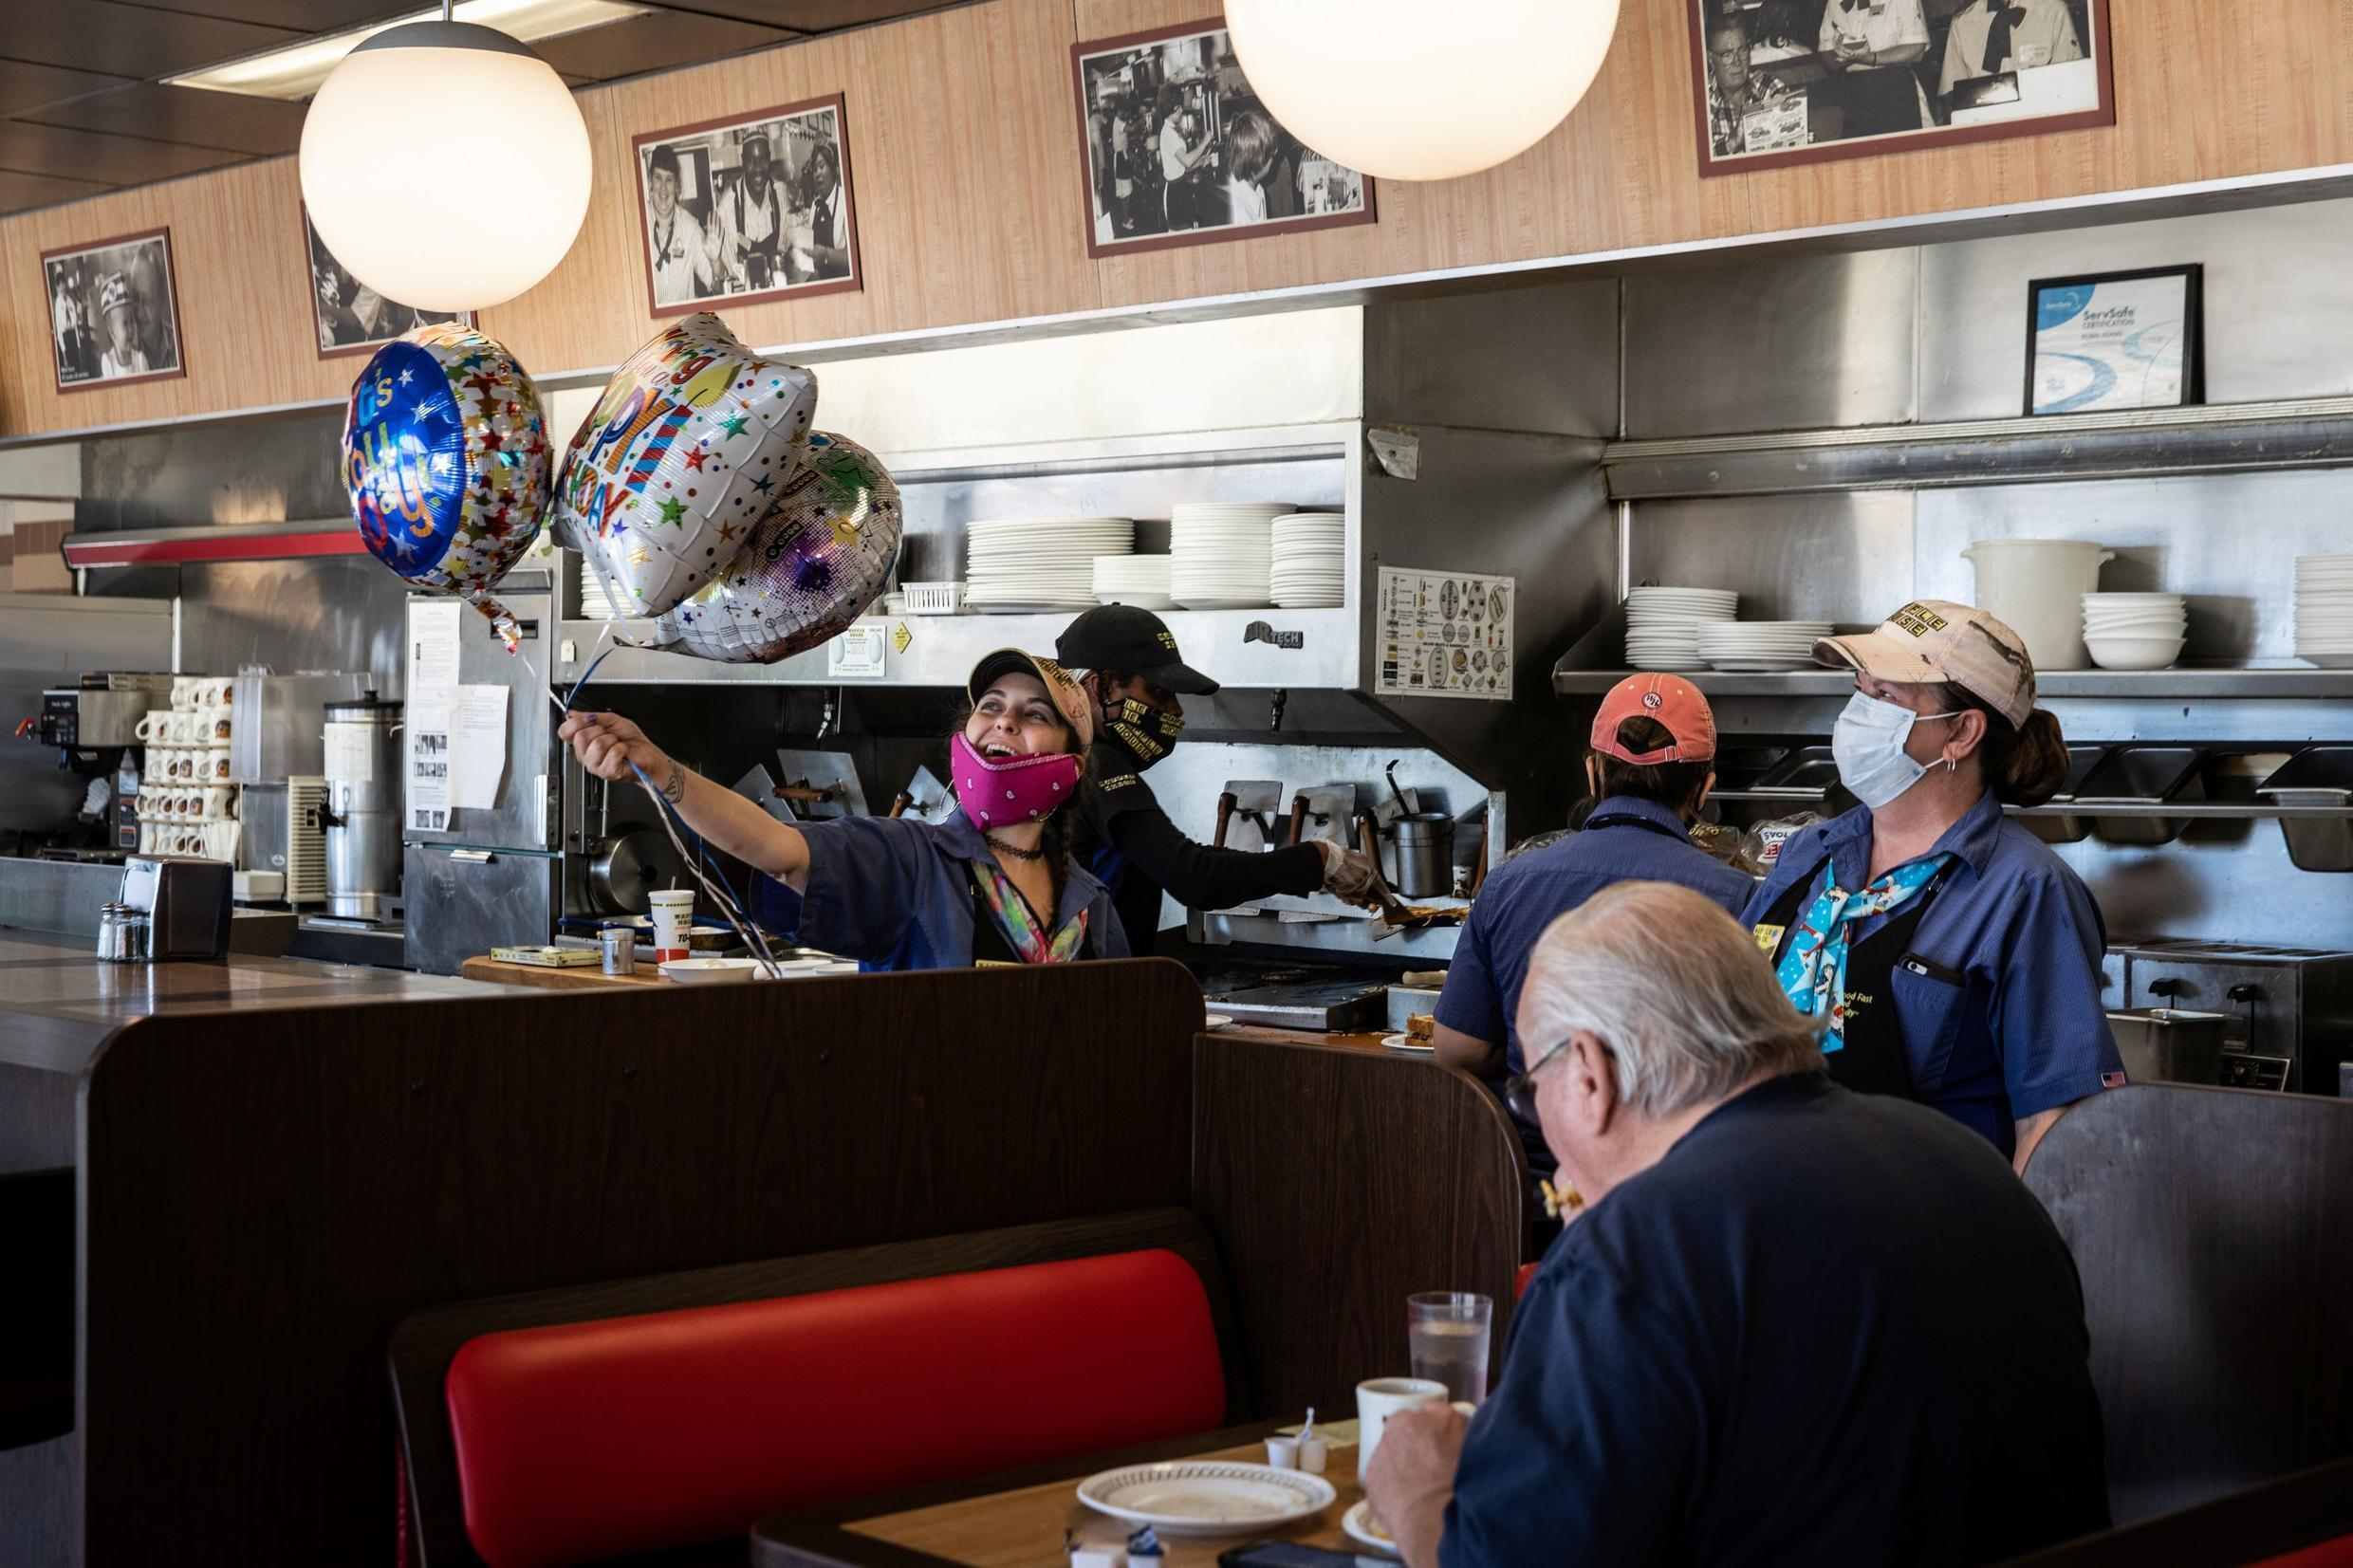 A staff member holding balloons at a Waffle House in Madison, Georgia, USA on April 27, 2020.